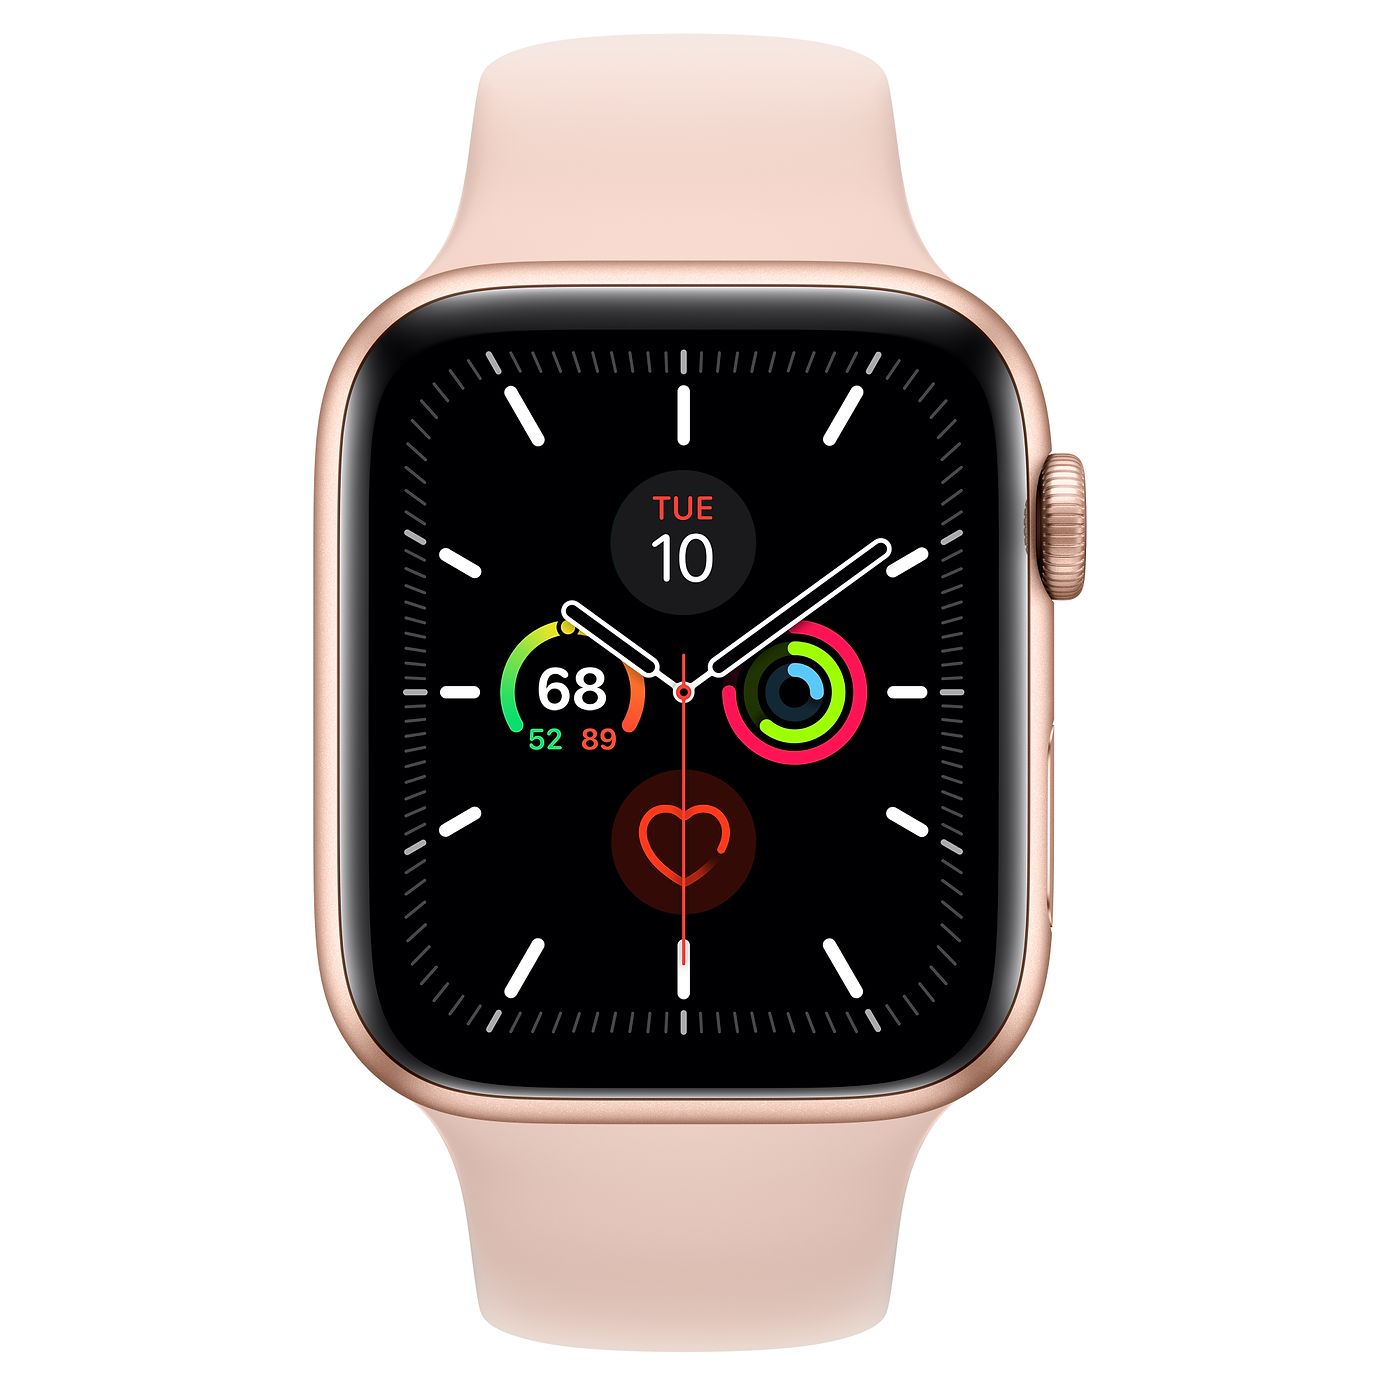 Apple Watch Series 5 : Smart fitness watch with Customized Feature